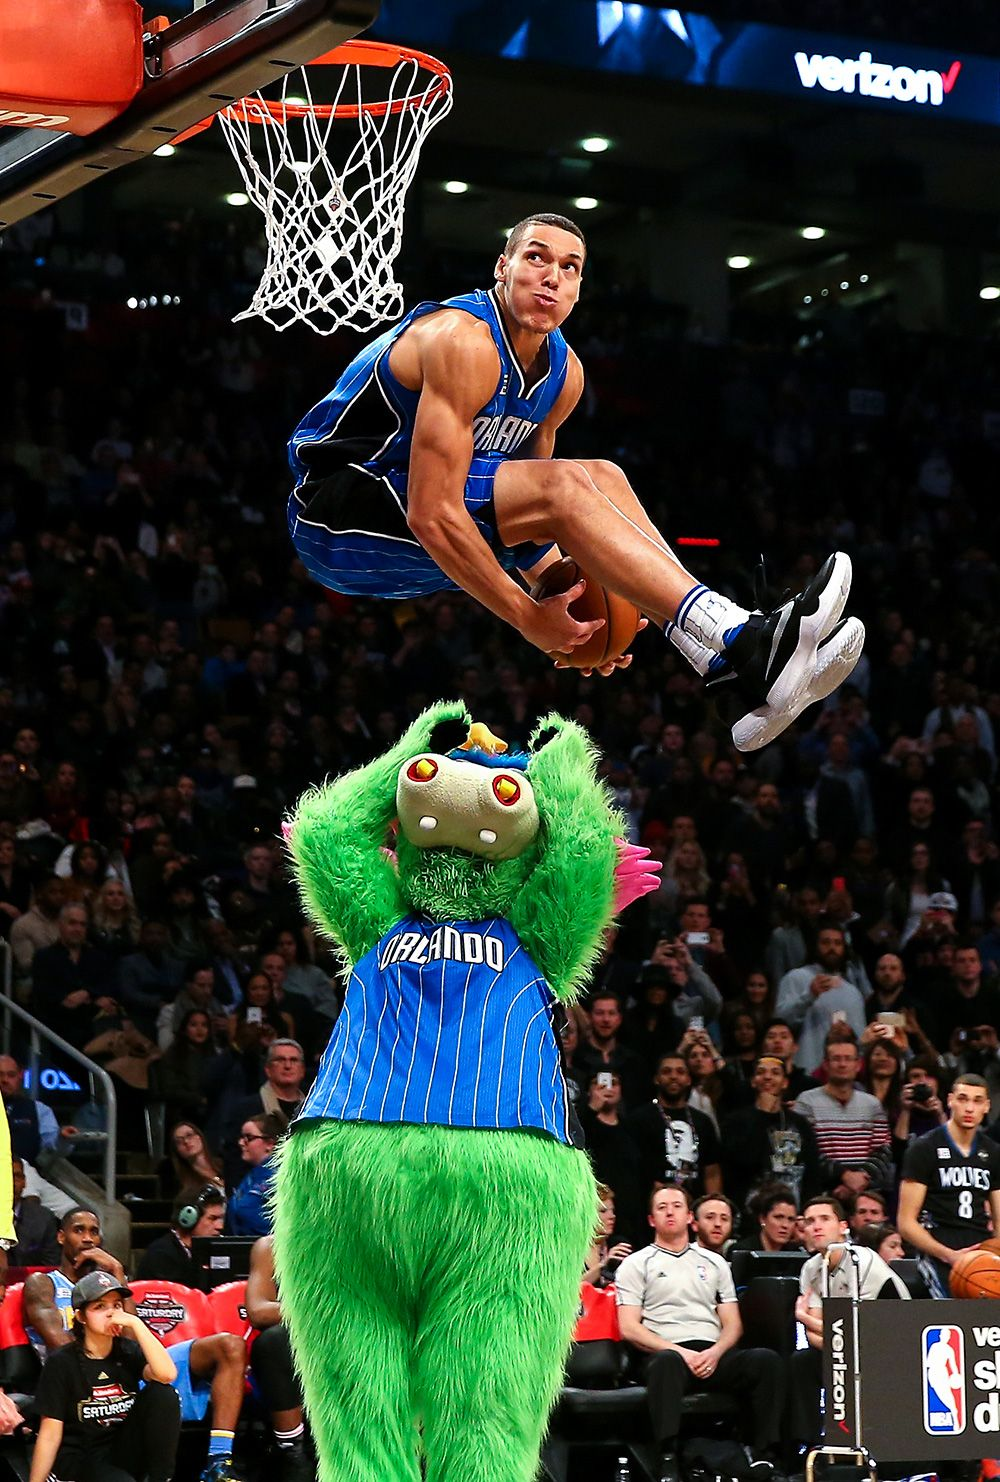 Must See Photos Of The Week Feb 7 Feb 13 Nba Slam Dunk Contest Nba Basketball Nba Pictures